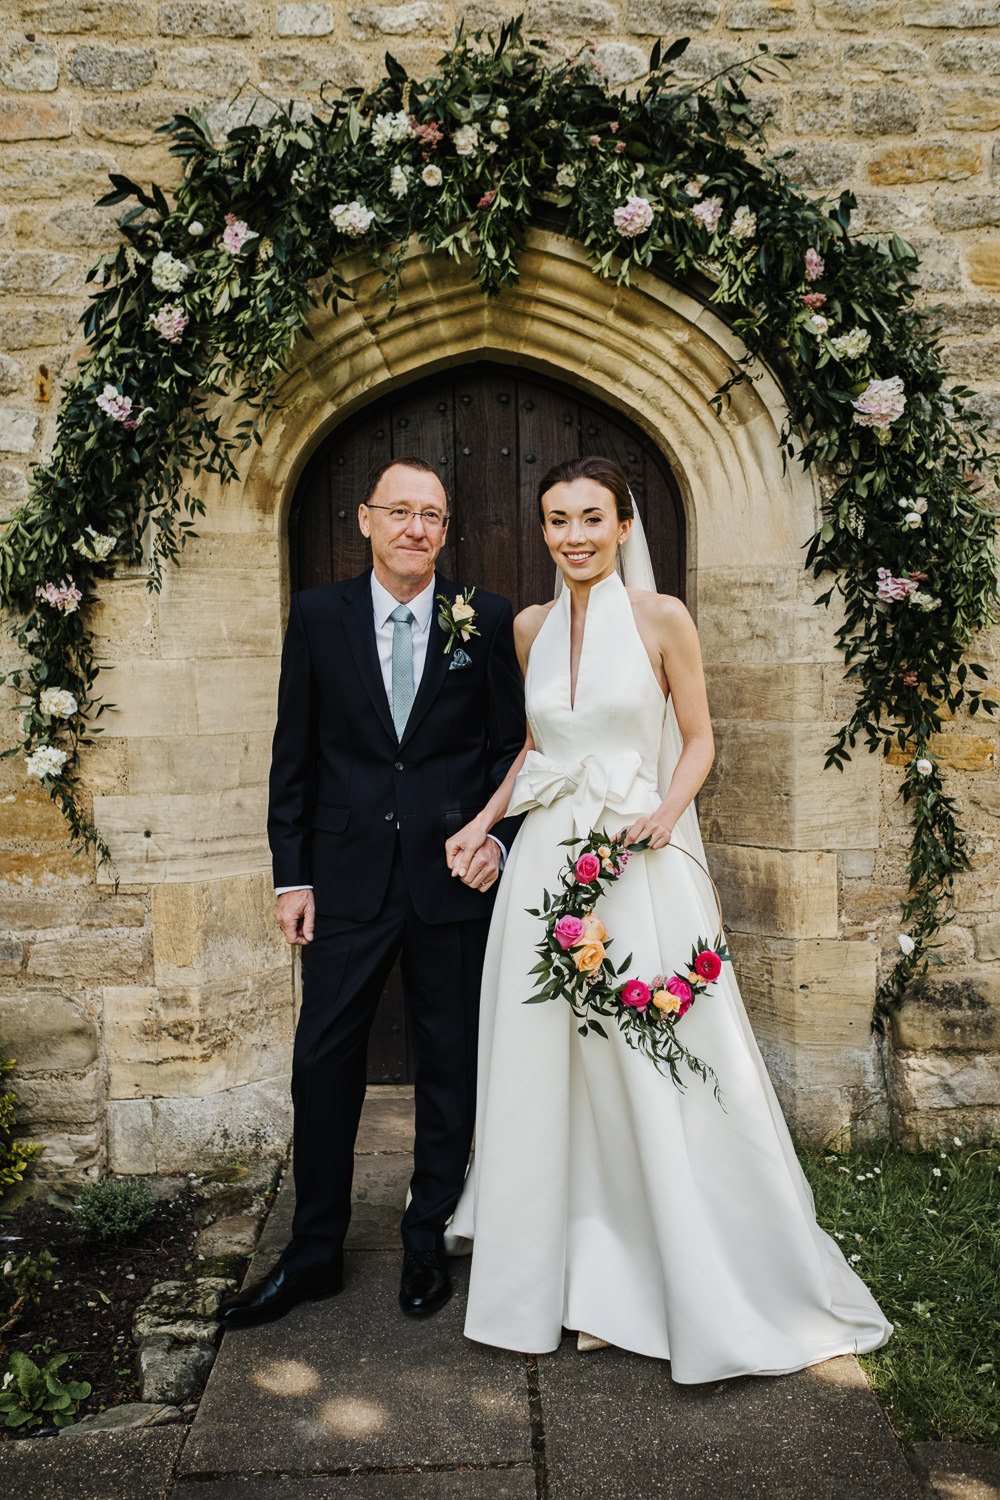 Bride Bridal Halterneck Collar Dress Gown Pockets Bow Jesus Peiro Floral Hoop Veil Greenery Floral Church Arch Middlethorpe Hall Wedding Andy Withey Photography